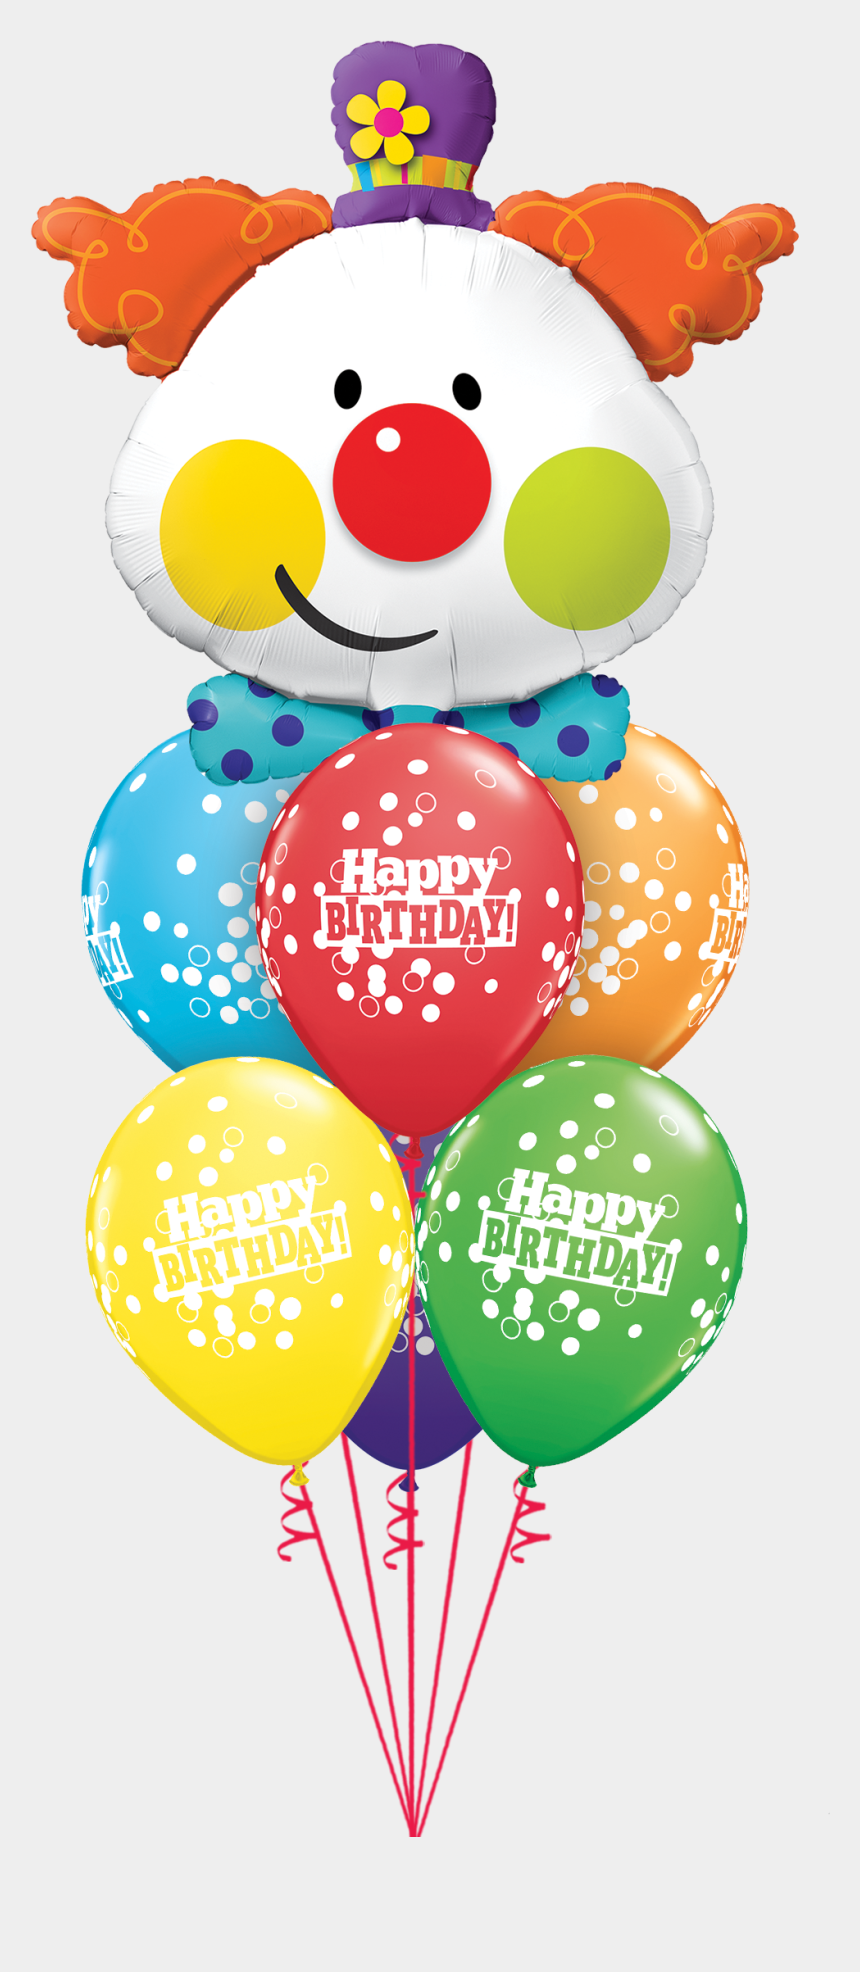 balloon bouquets clipart, Cartoons - Same Day Delivery , Express Delivery Within 2-3 Hours - Palloncino Pagliaccio